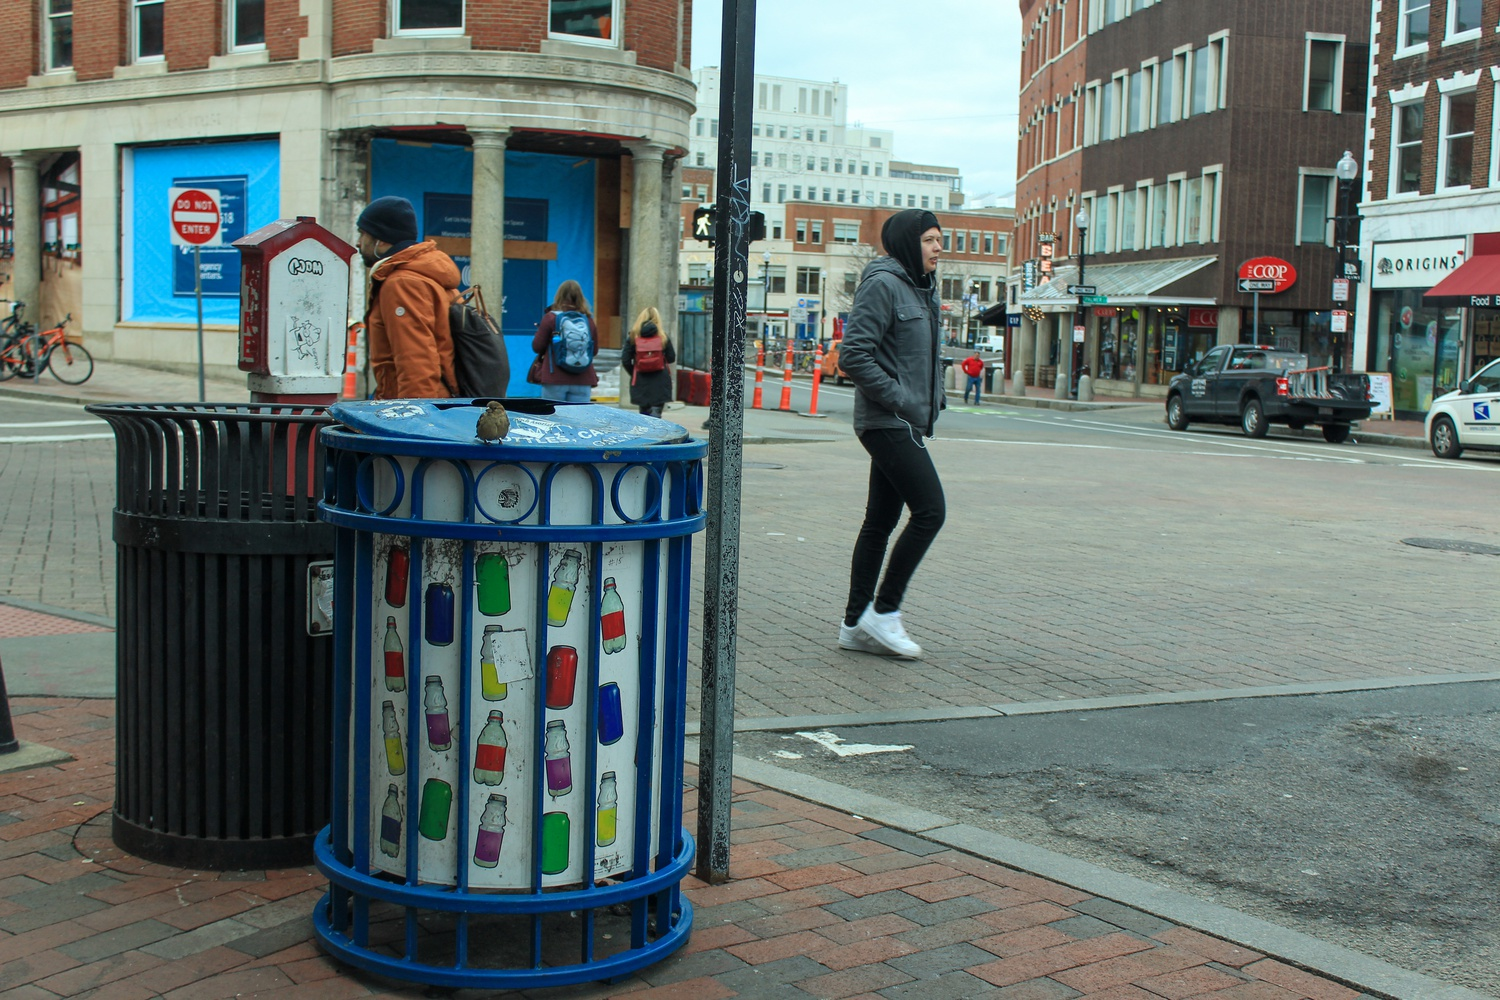 Pedestrians walk by a recycling bin in Harvard Square on Tuesday afternoon.